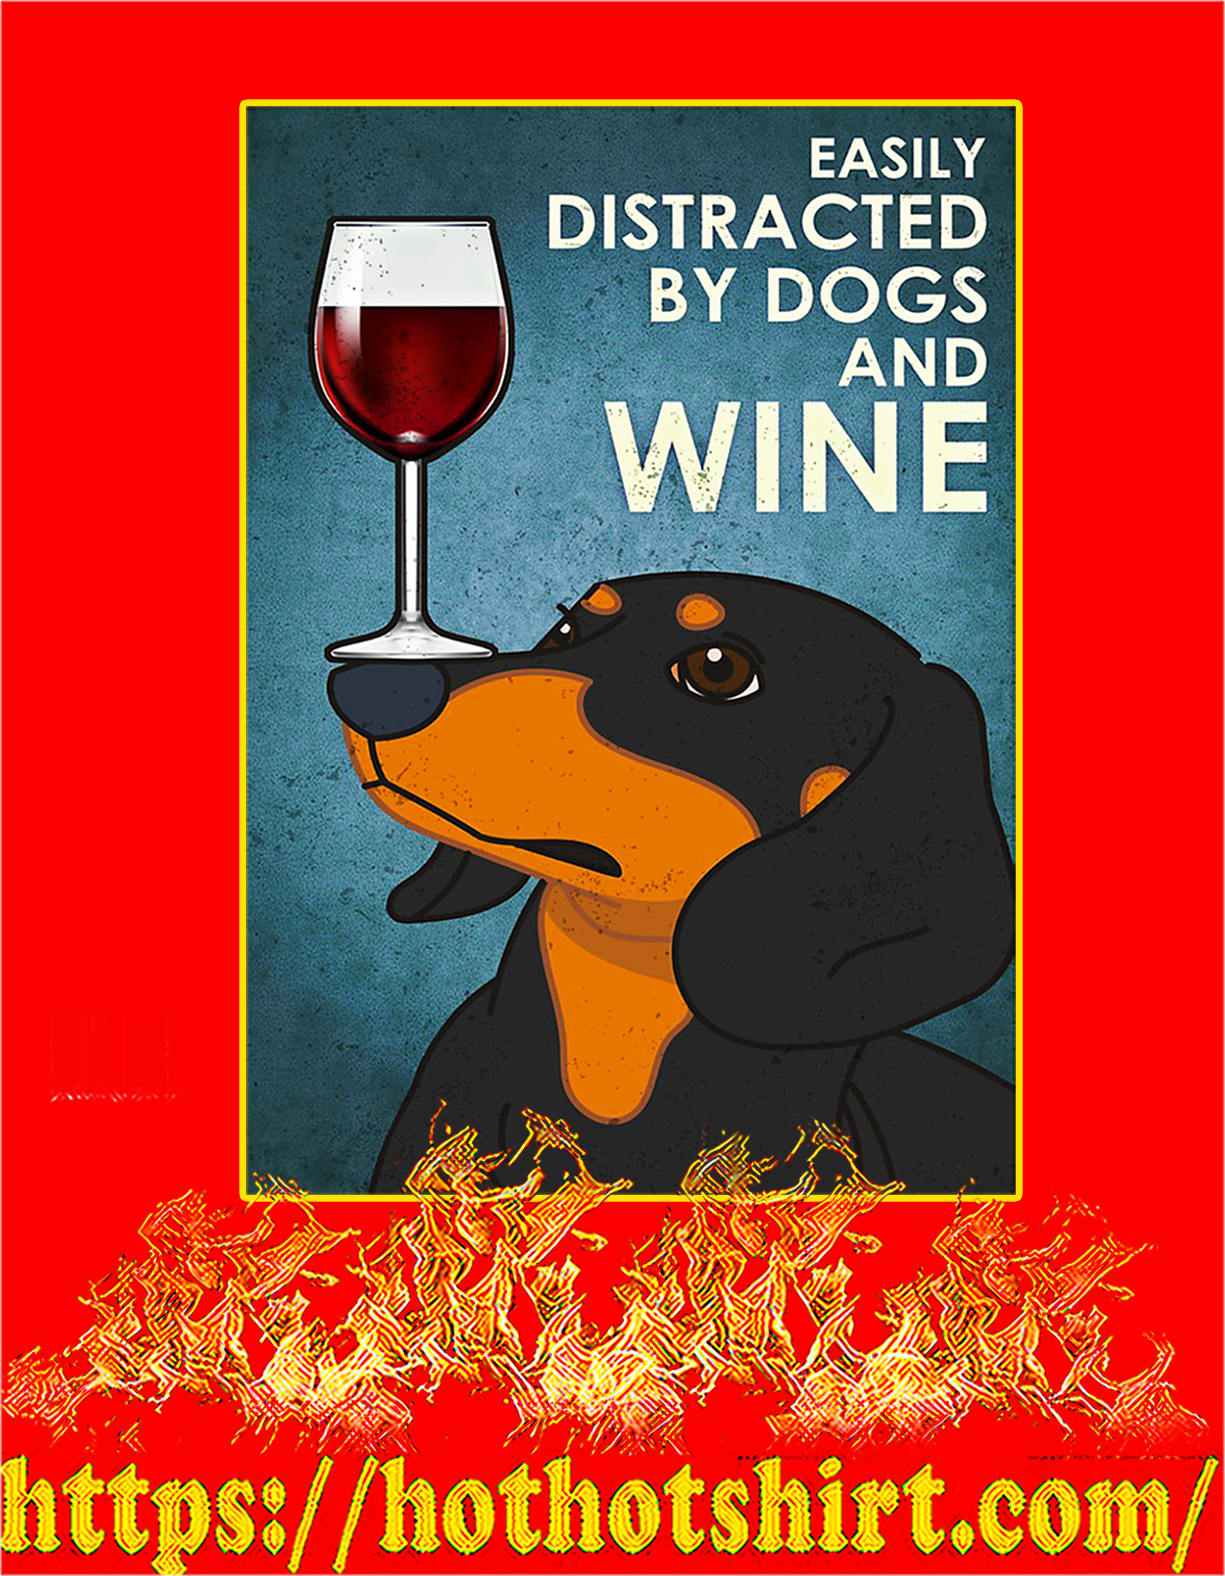 Dachshund Easily distracted by dogs and wine poster - A4